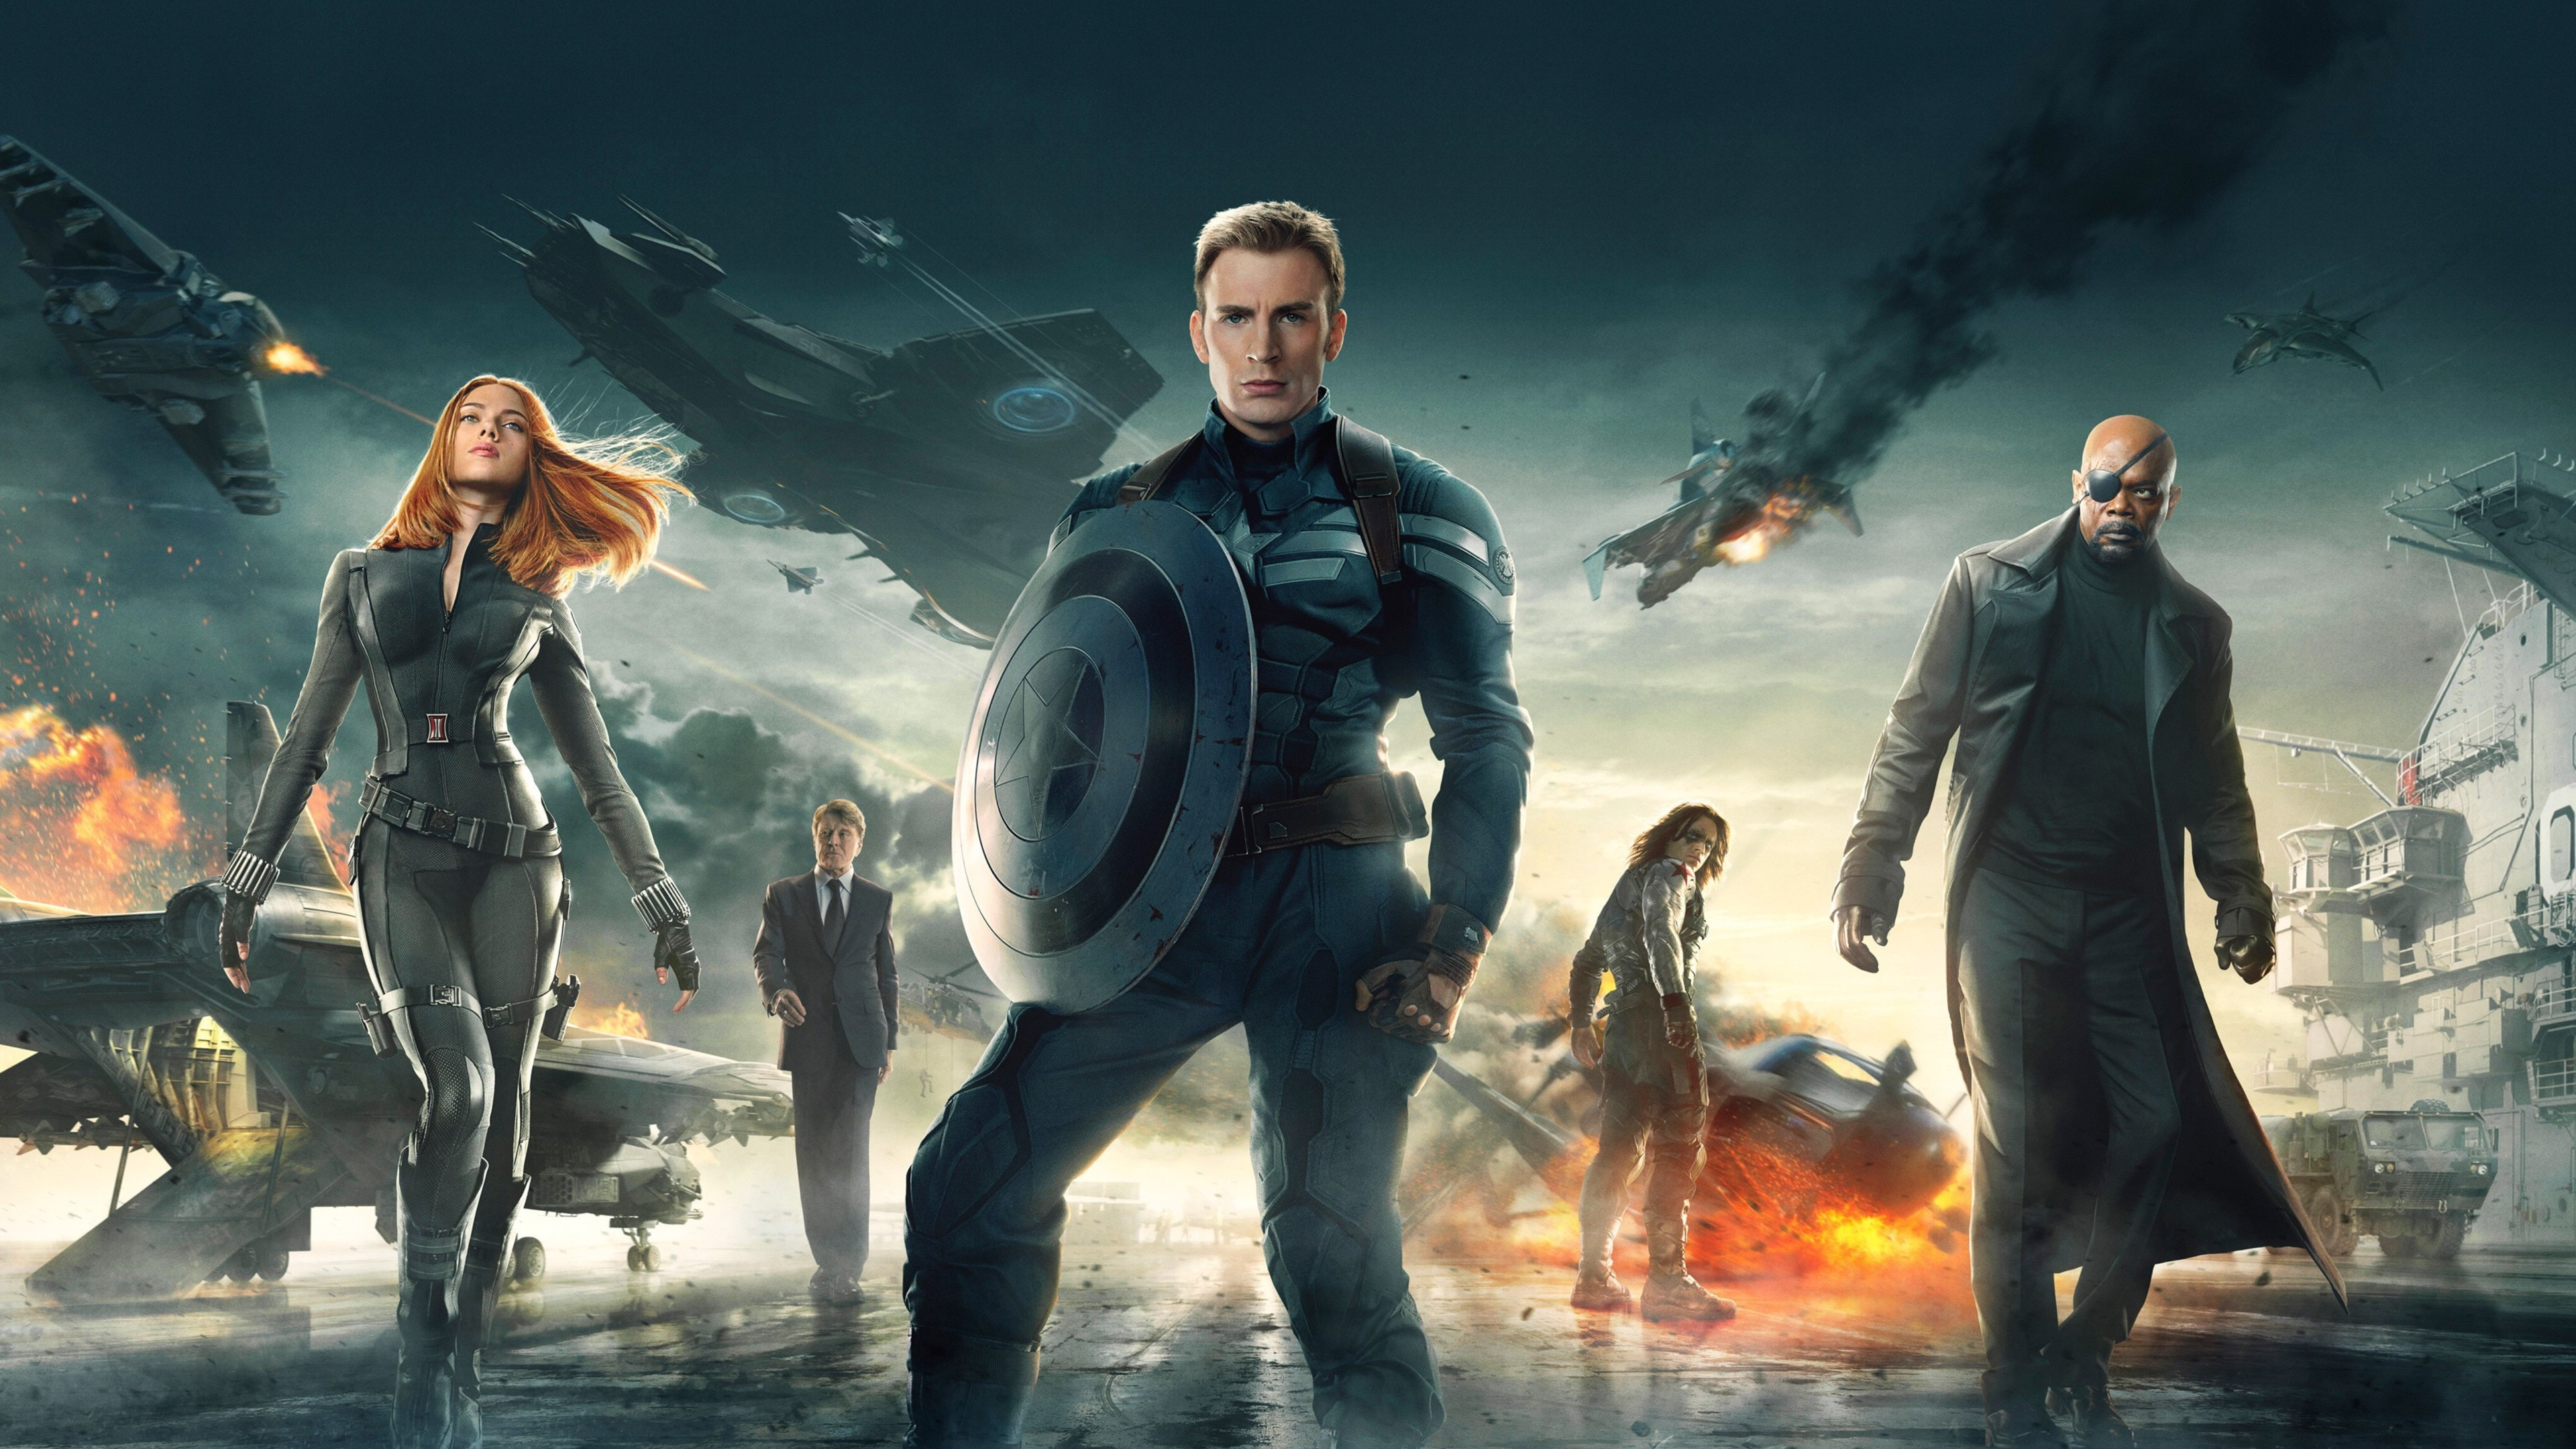 Res: 3840x2160, Captain America The Winter Soldier